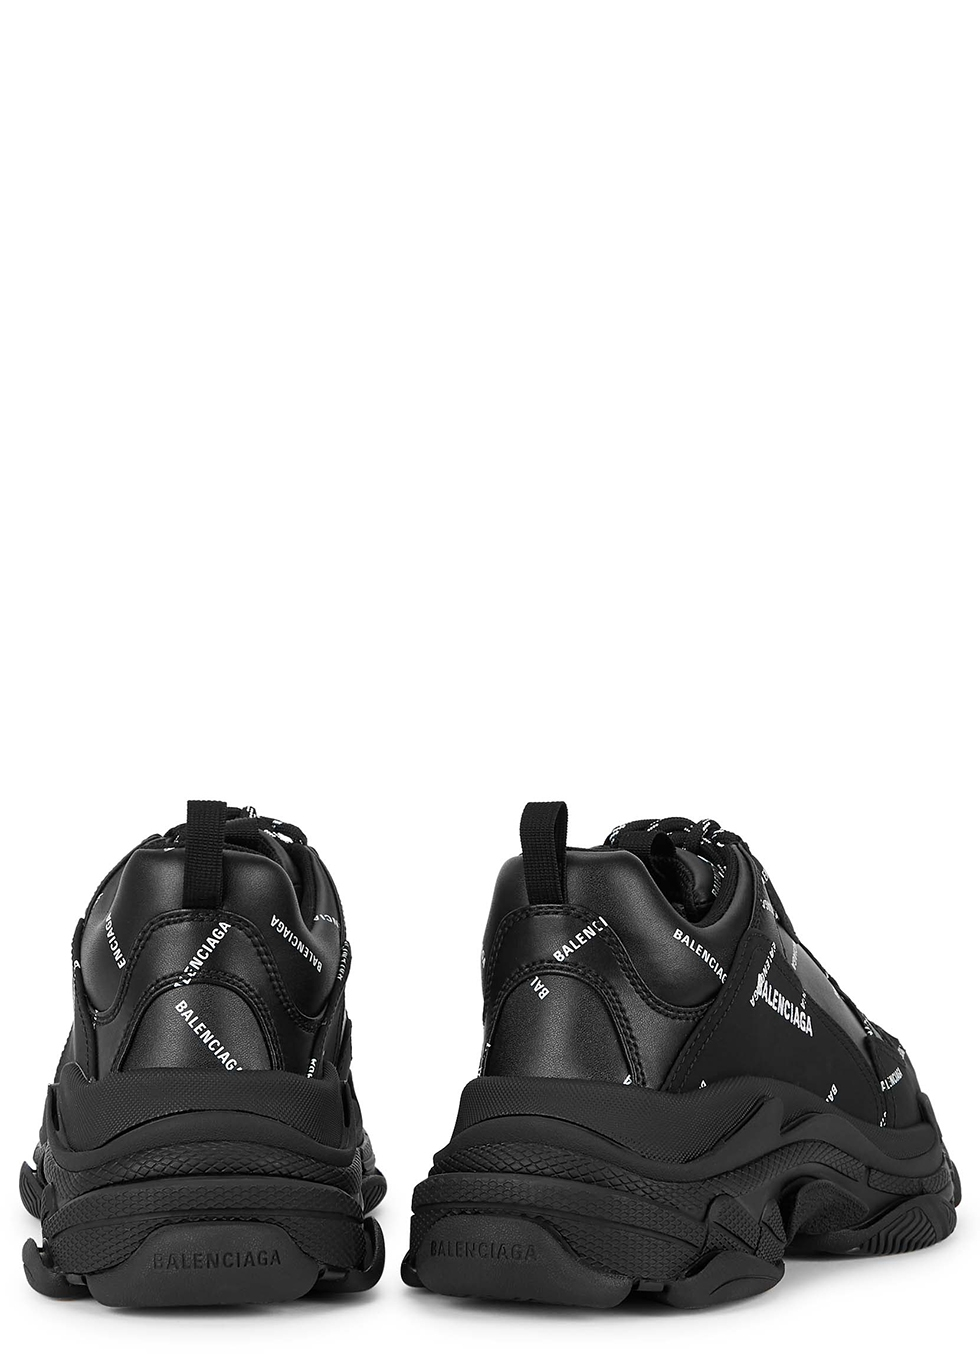 soldes balenciaga triple s chaussures homme 2018 running